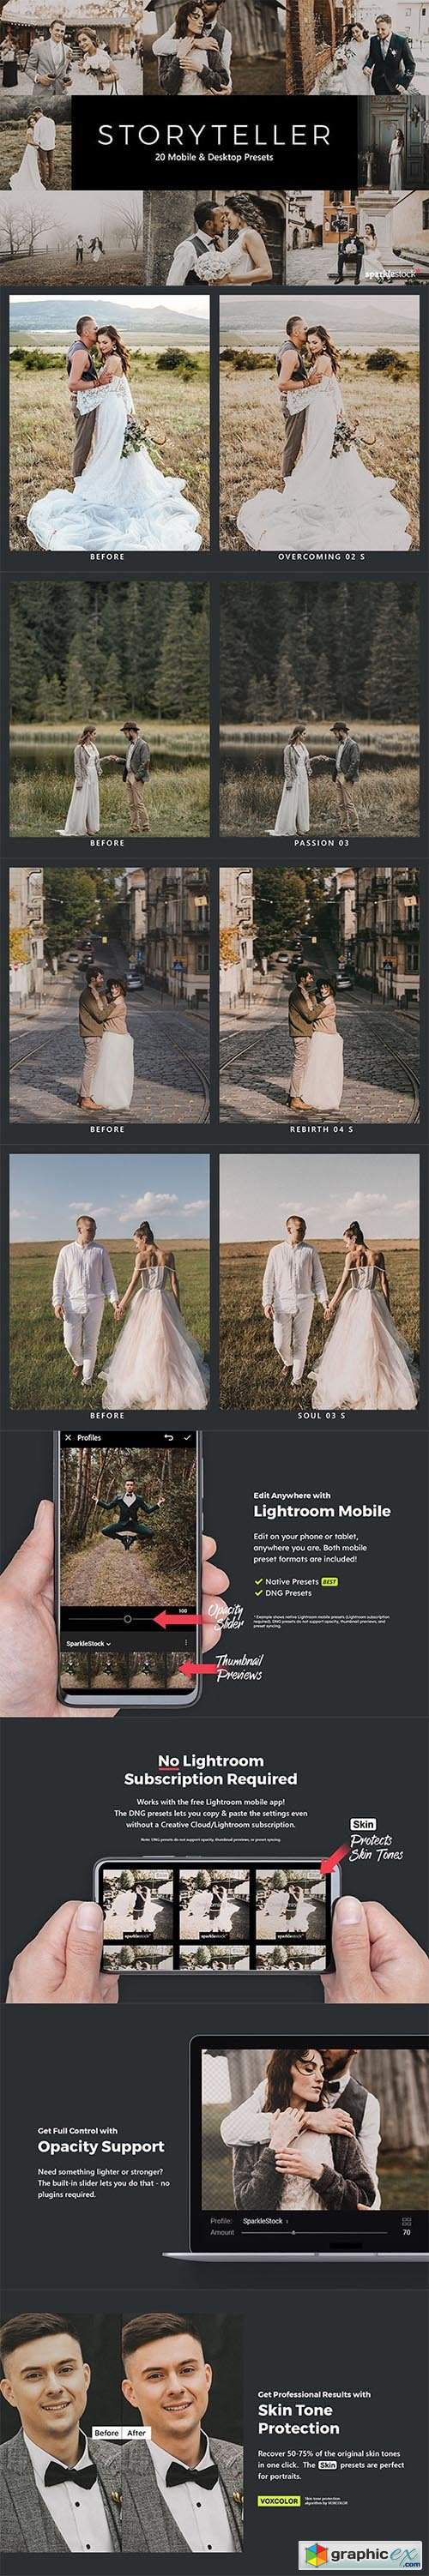 20 Storyteller Lightroom Presets & LUTs